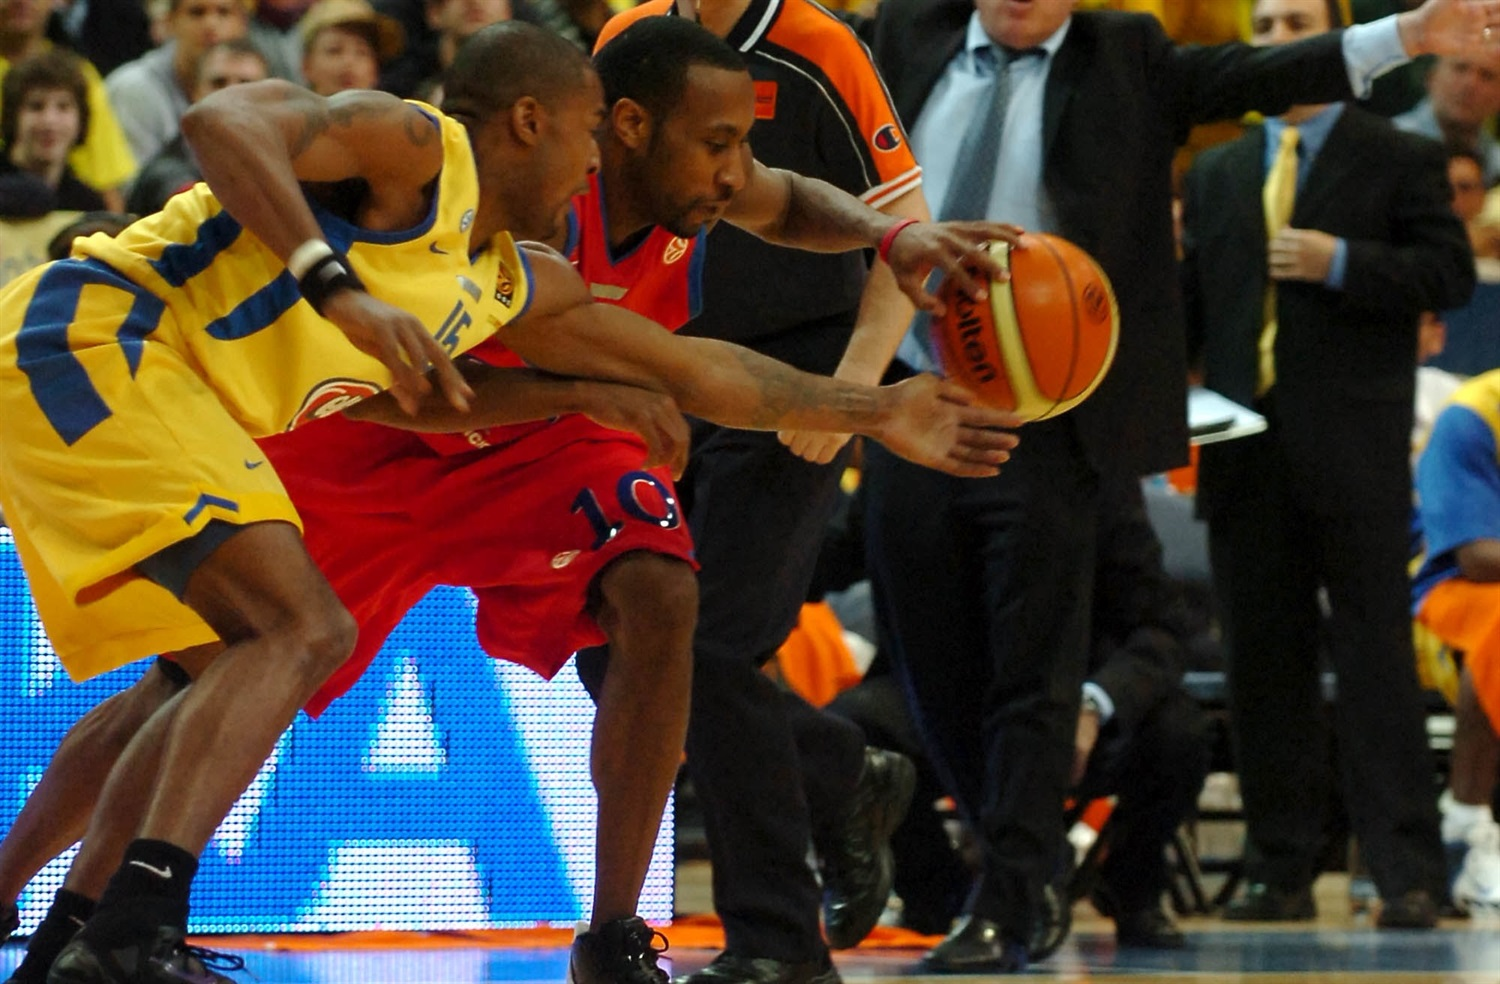 JR Holden - CSKA Moscow - Final Four Prague 2006 - EB19